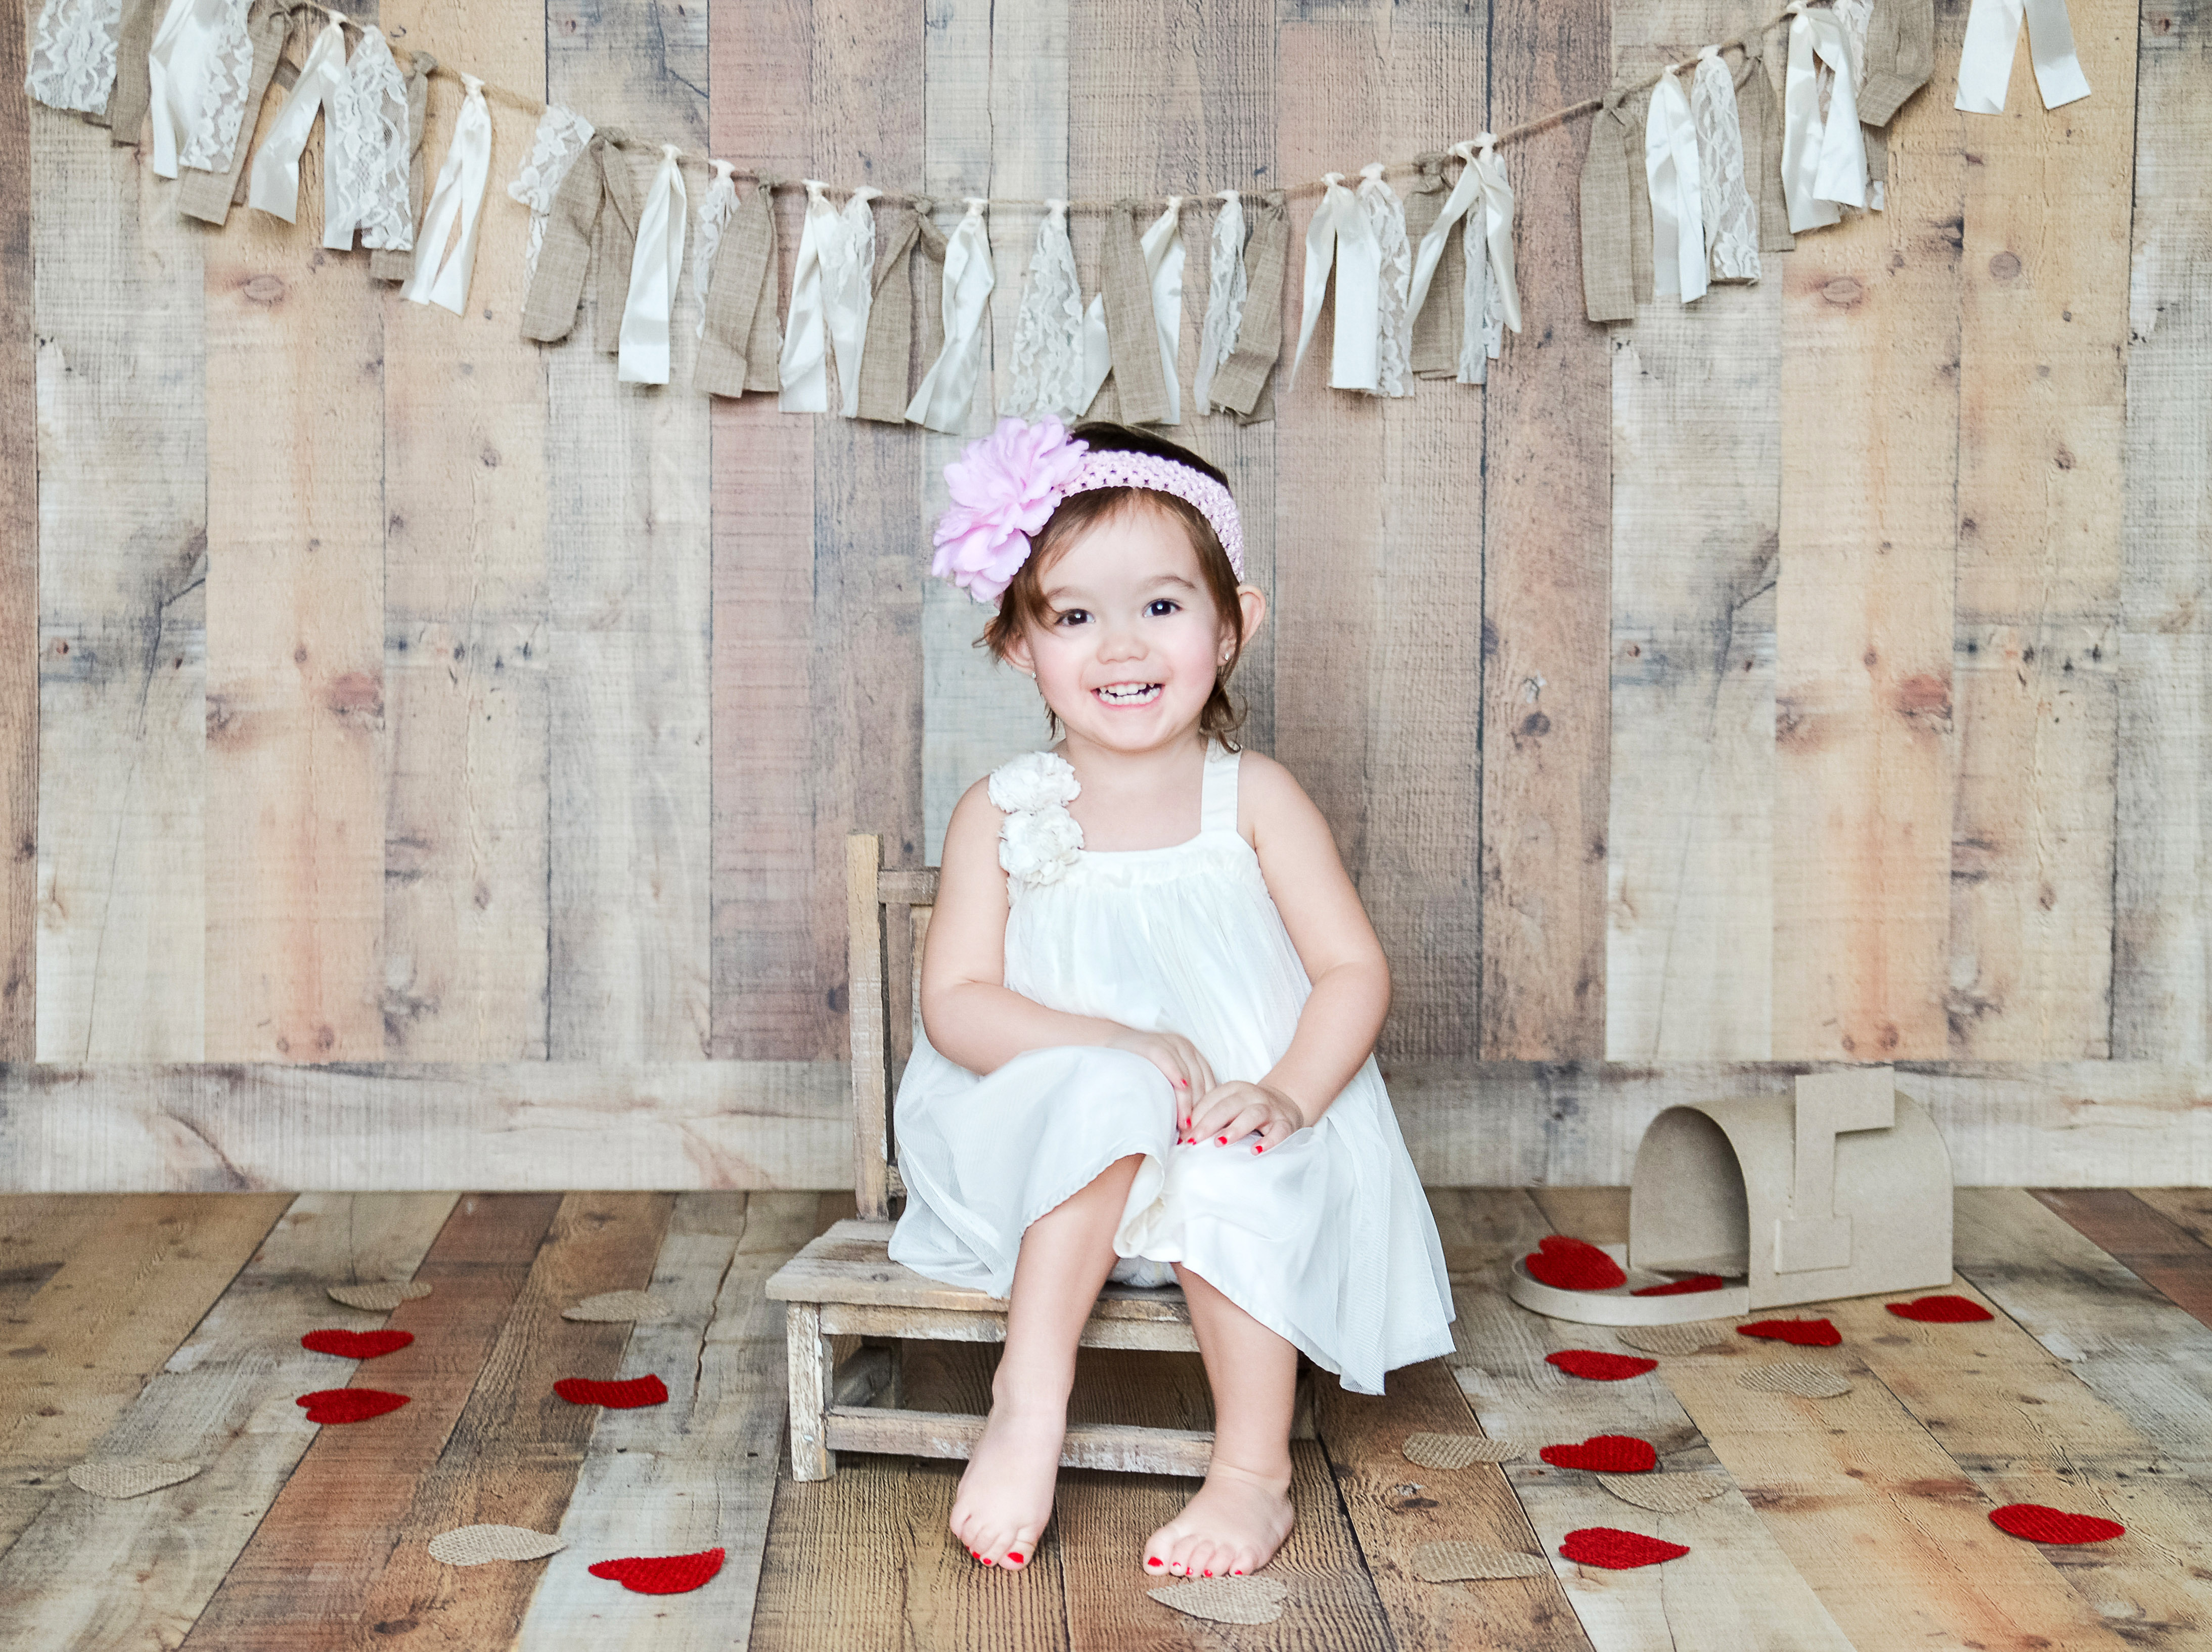 Andrea_Krout_Photography_Valentines_Day_Mini_Limited_Edition_Sessions_Drexel_Hill_Family_Main_Line_P